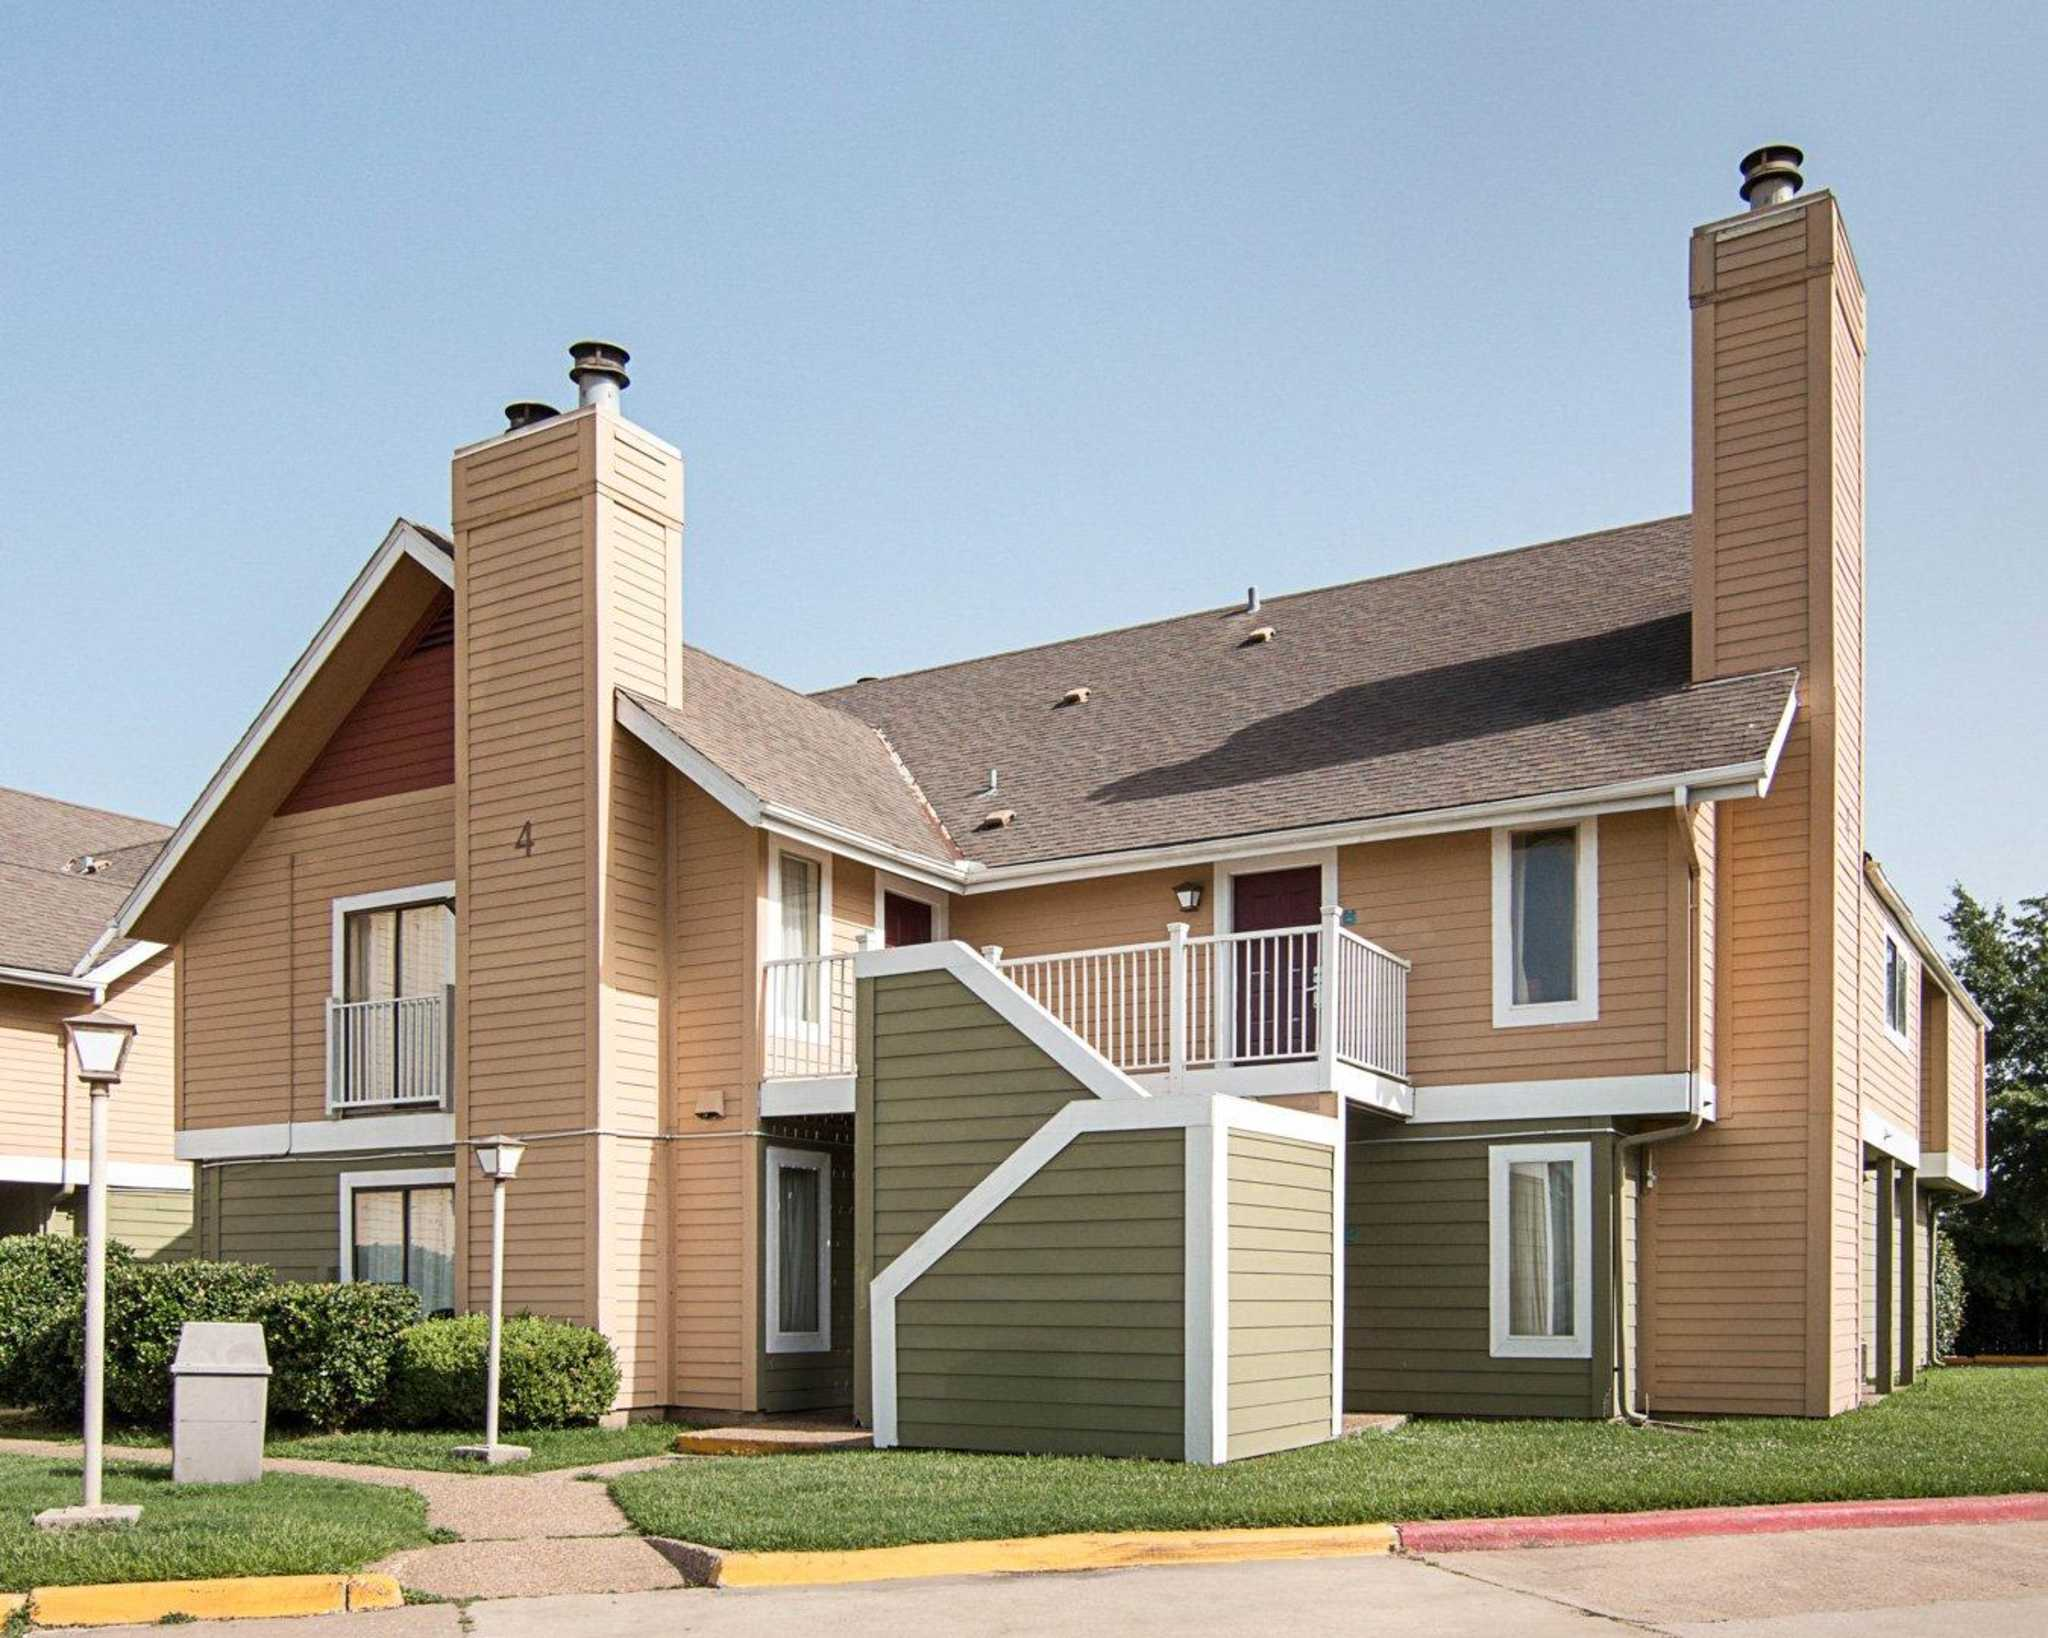 Mainstay Suites At 1001 Gould Drive Bossier City La On Fave